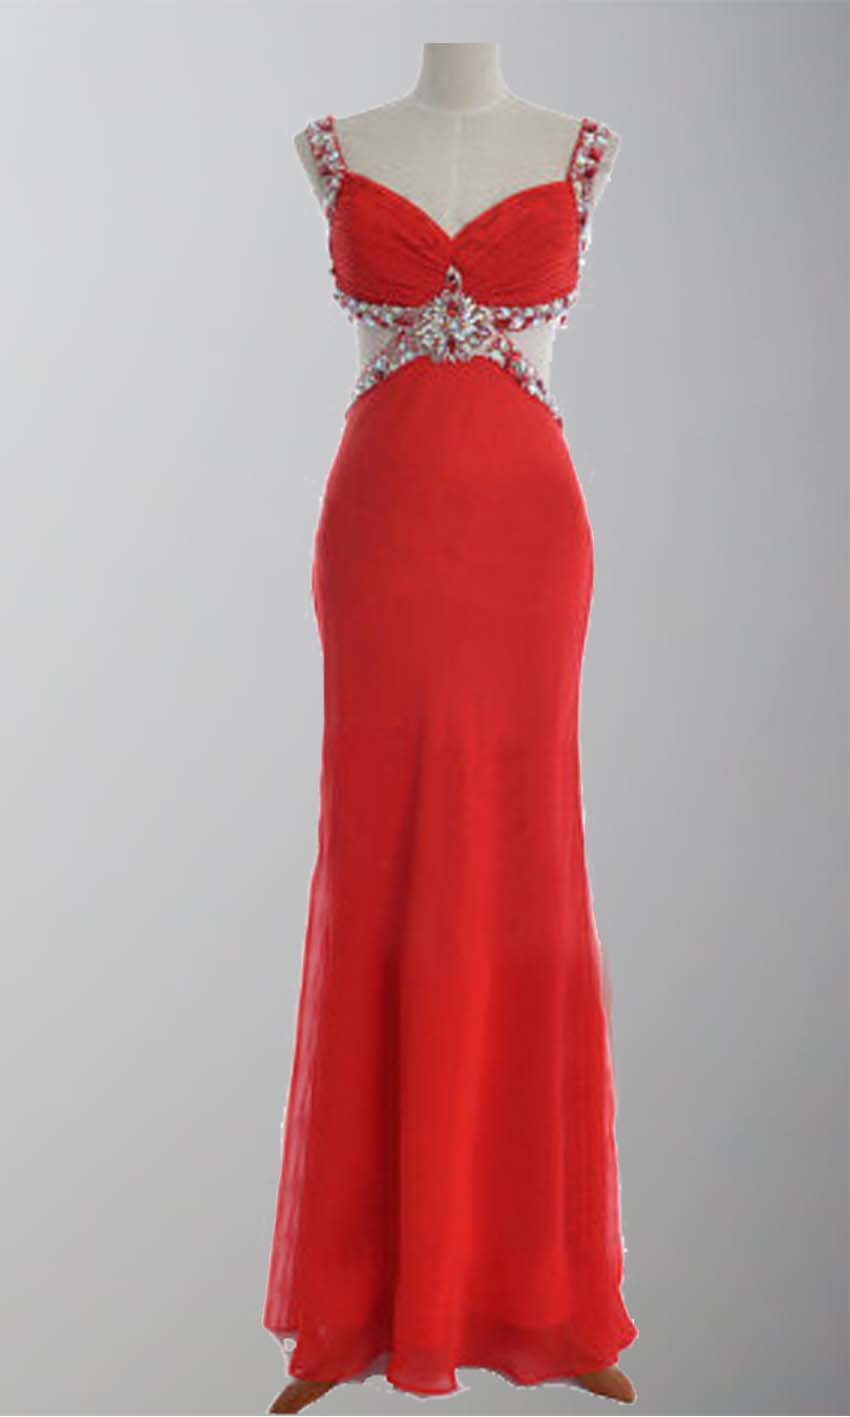 Sexy Crossed Back Sequin Cut Out Straps Prom Dresses KSP291 [KSP291] - £104.00 : Cheap Prom Dresses Uk, Bridesmaid Dresses, 2014 Prom & Evening Dresses, Look for cheap elegant prom dresses 2014, cocktail gowns, or dresses for special occasions? kissprom.co.uk offers various bridesmaid dresses, evening dress, free shipping to UK etc.